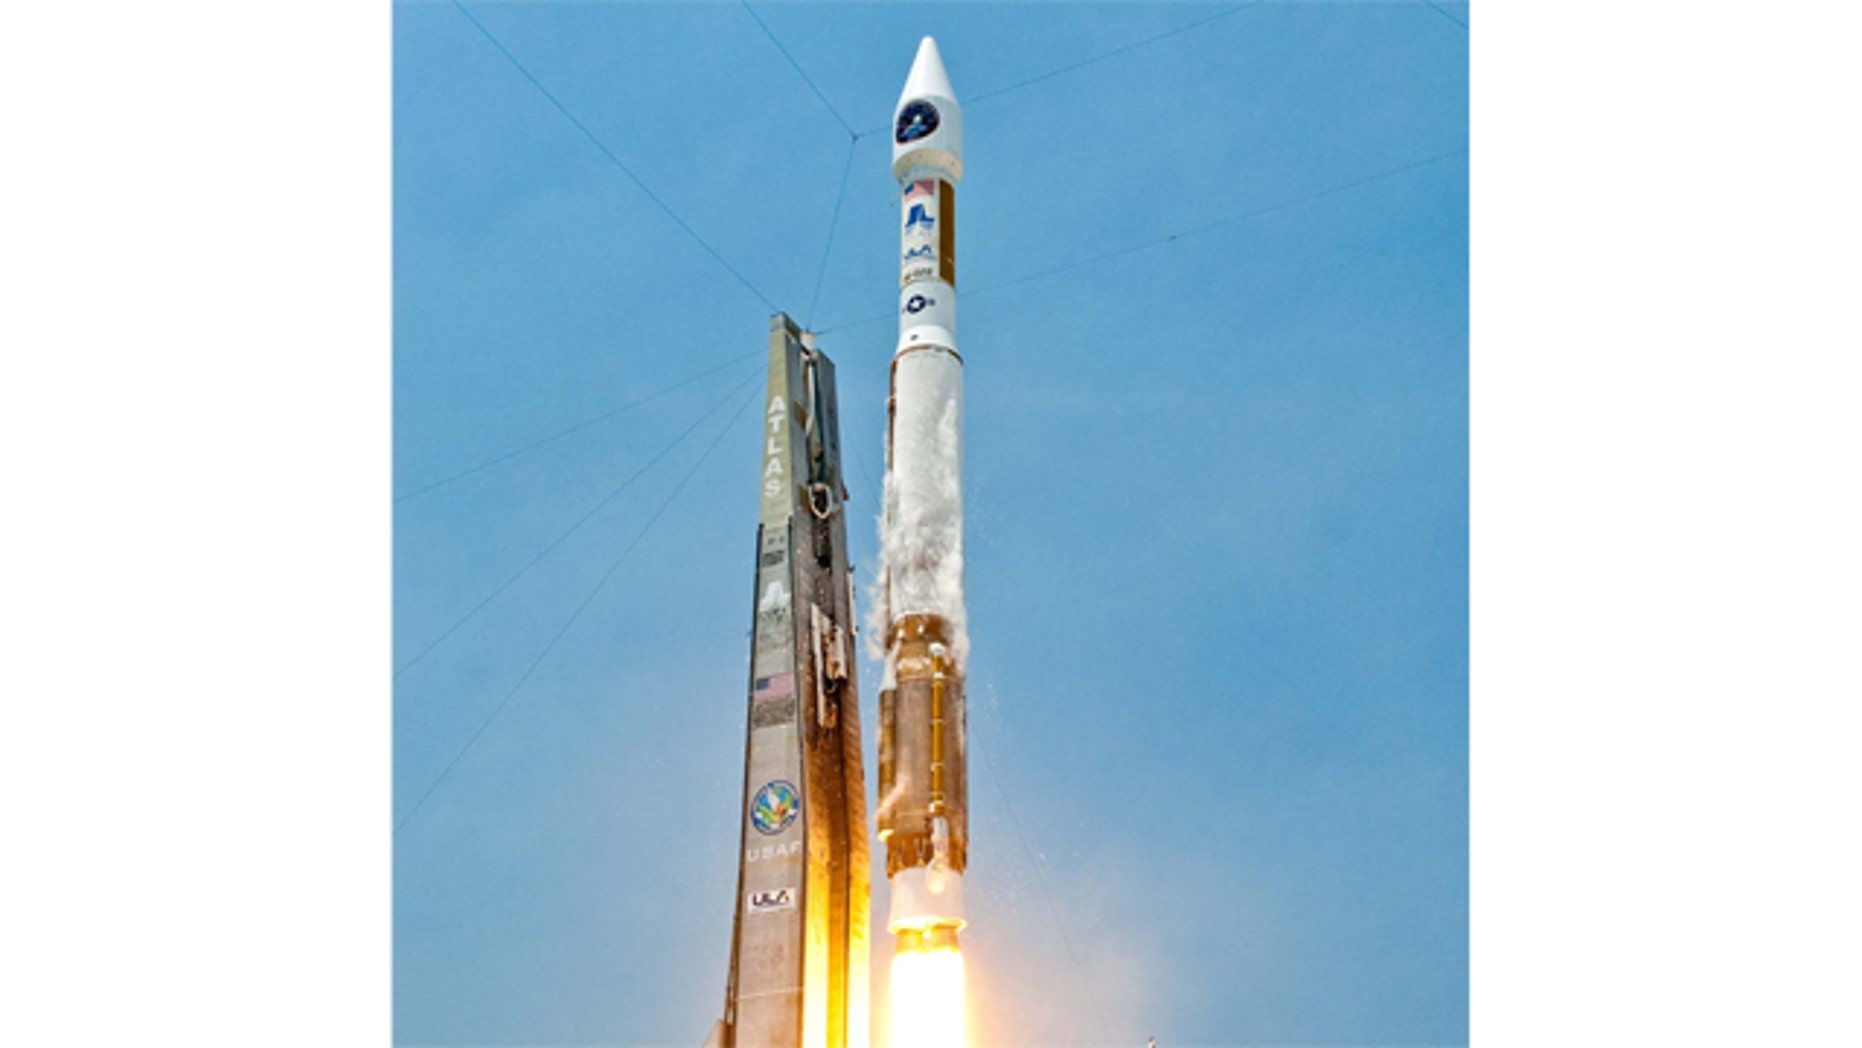 A United Launch Alliance Atlas 5 rocket blasts off from Space Launch Complex-41 at the Cape Canaveral Air Force Station in Florida with the Air Force's Space Based Infrared Systems (SBIRS) GEO-1 satellite on May 7, 2011. Liftoff occurred at 2:10 p.m. EDT.